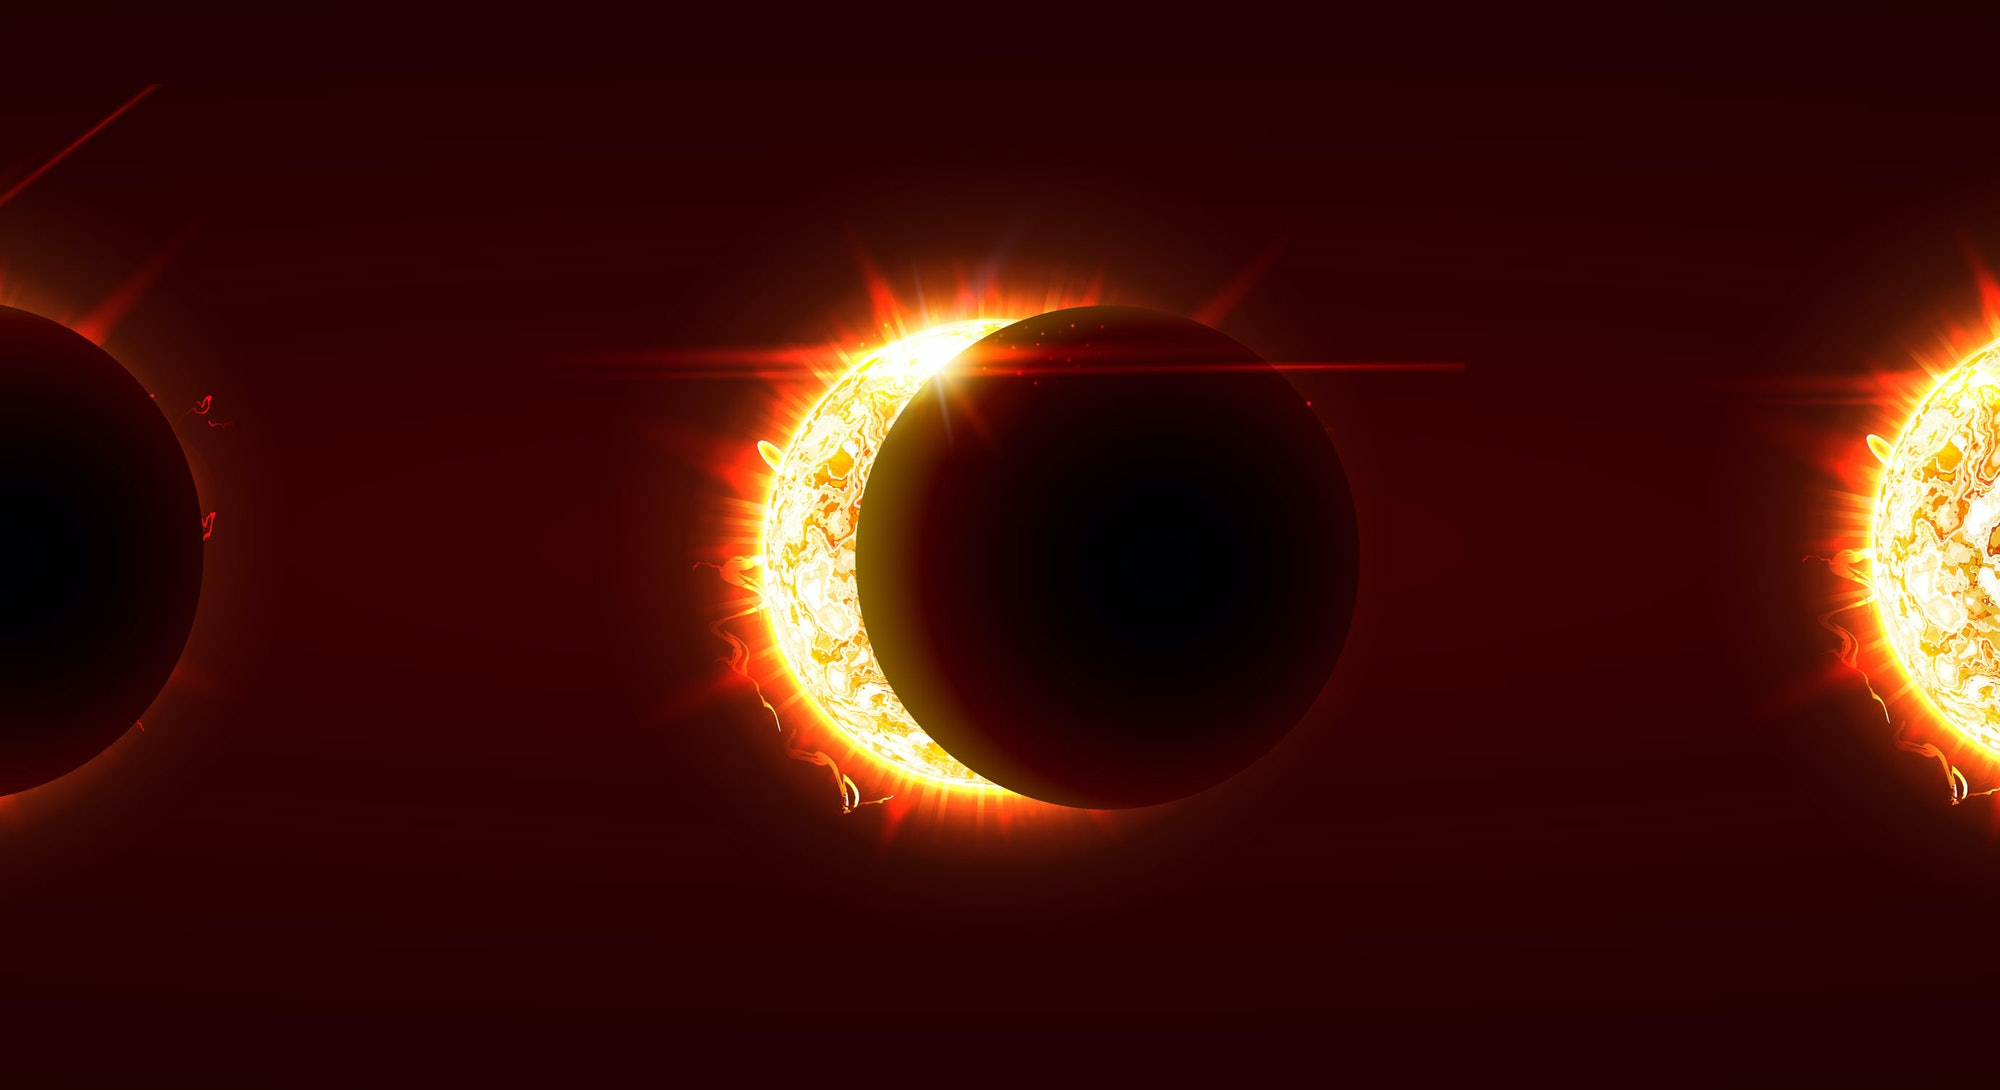 Sun eclipse, total and partial solar eclipse, several phases. Sun, moonandearthare nearly aligned on a straight line. Vector illustration, eps10